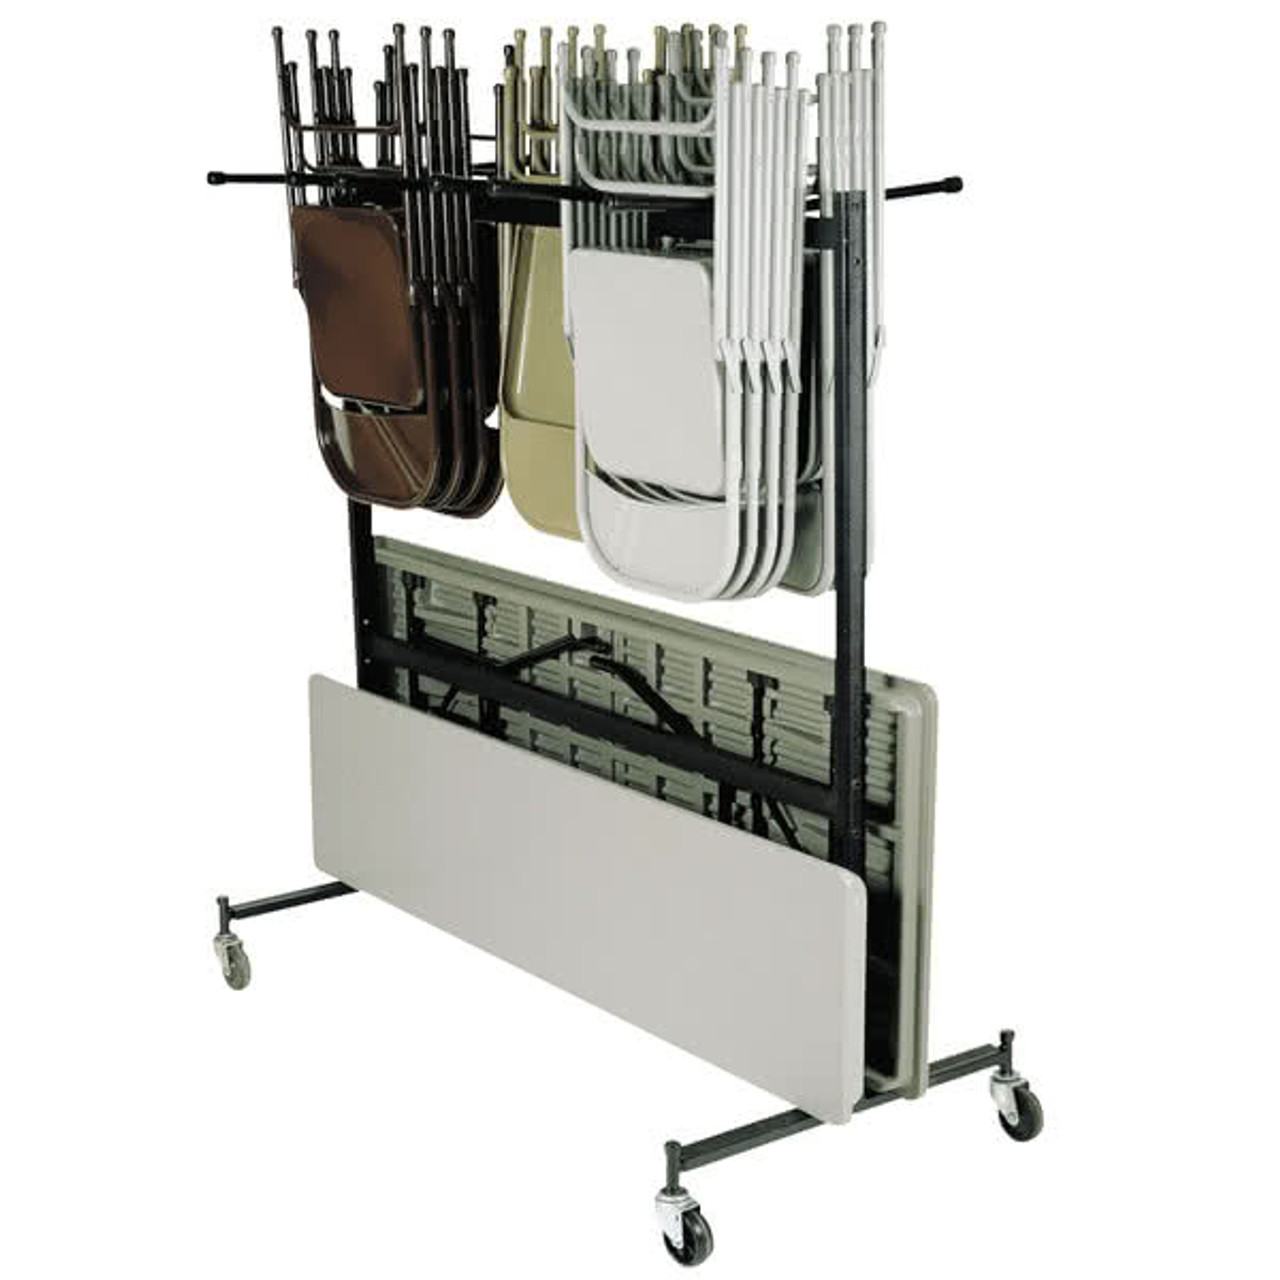 Hanging Folding Chair And Table Storage And Transport Cart Holds Up To 42 Chairs And 10 Tables Foldingchairsandtables Com